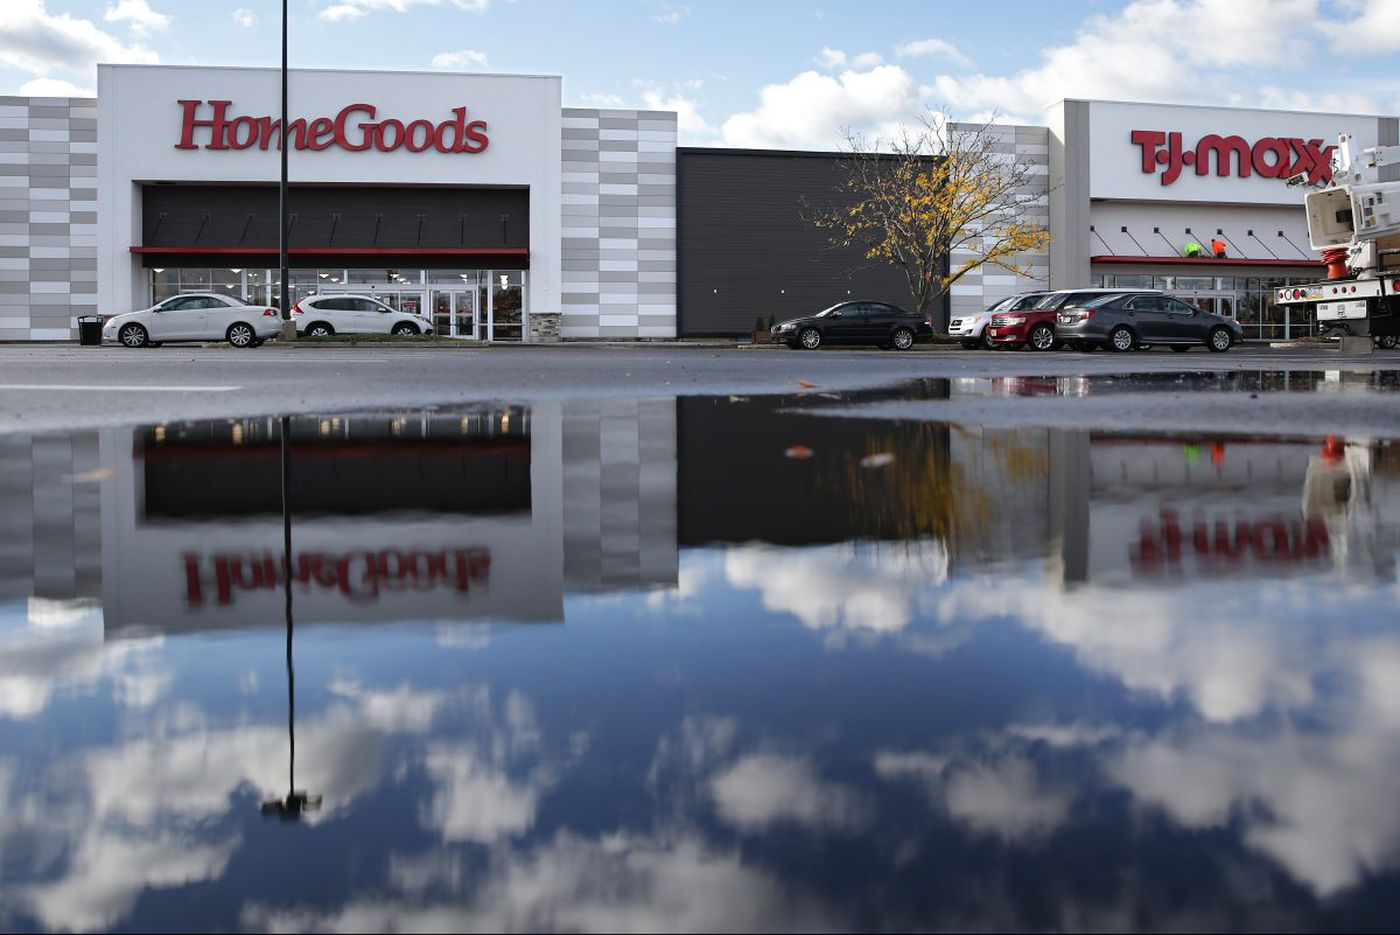 TJ Maxx/HomeGoods combo store marks Sunday opening in South Philly